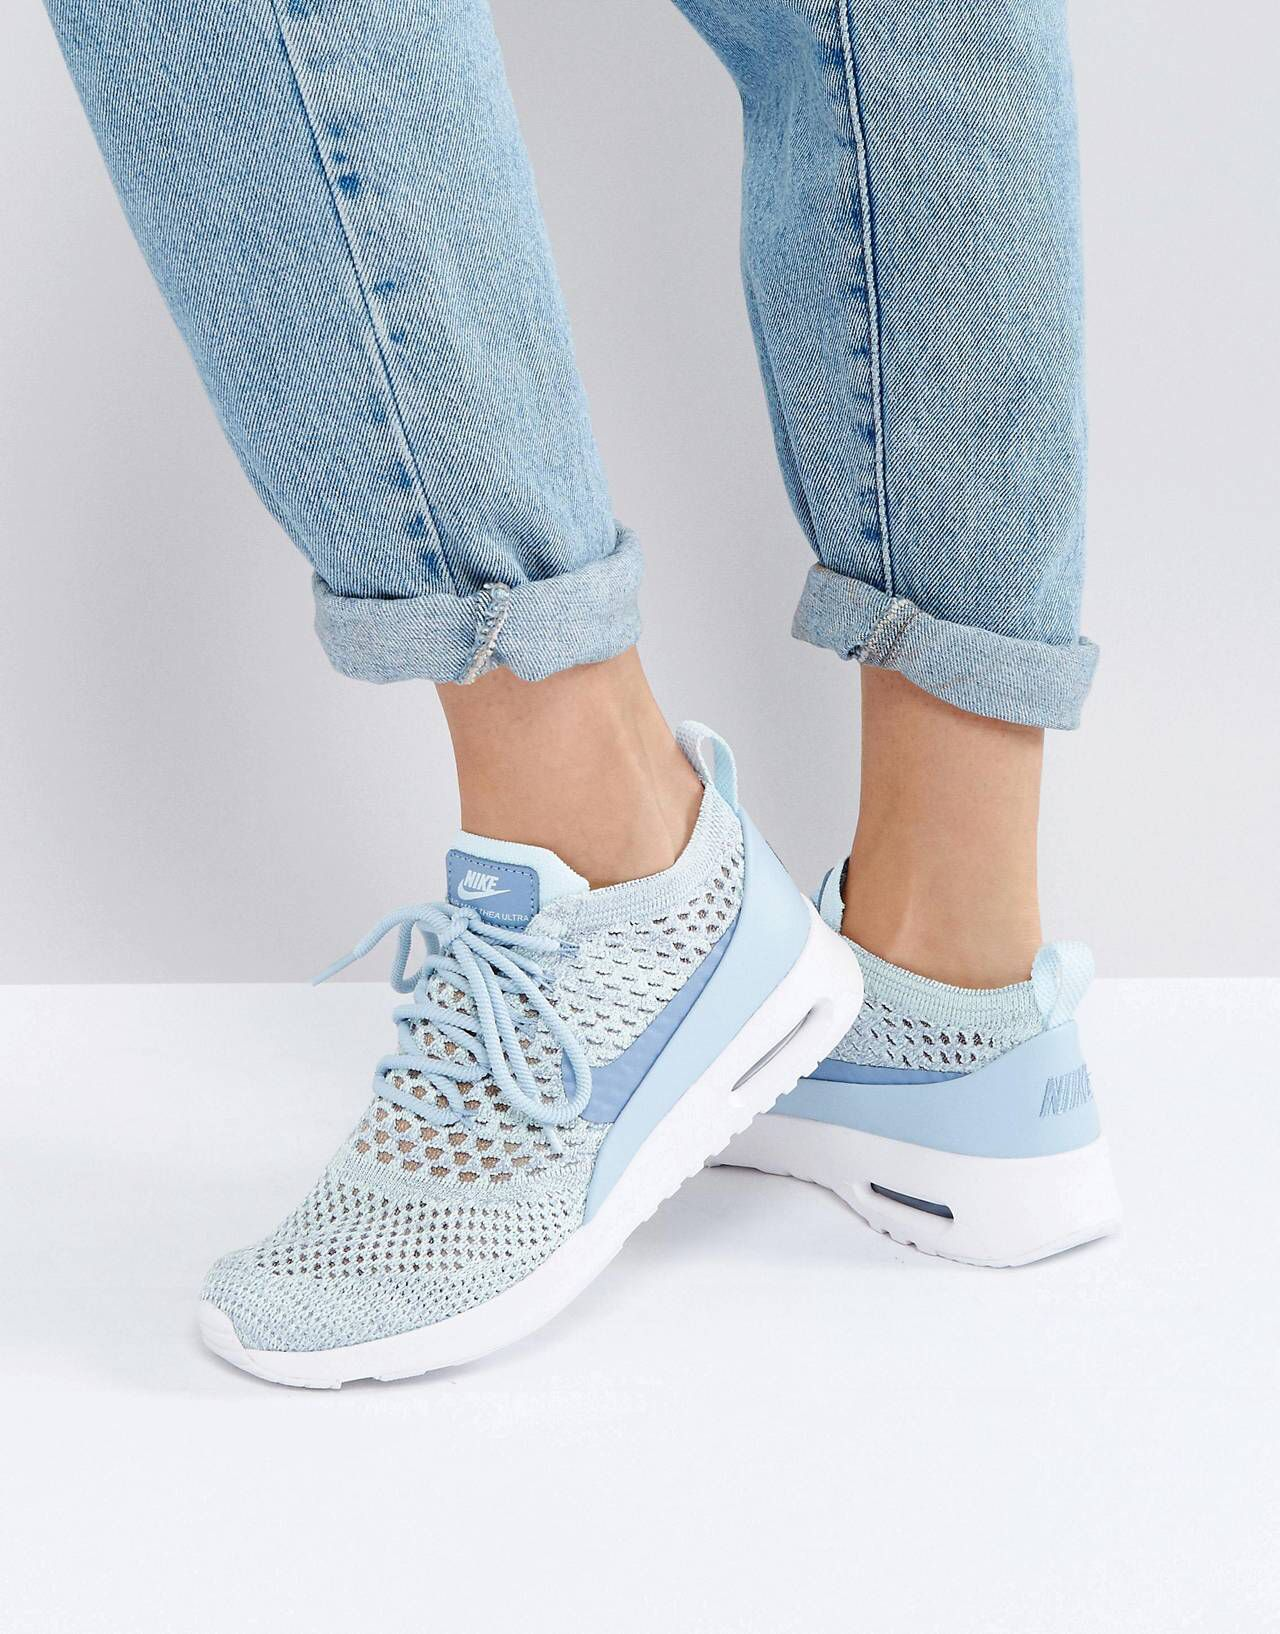 e232137a8459b Nike Air Max Thea Ultra Flyknit Trainers